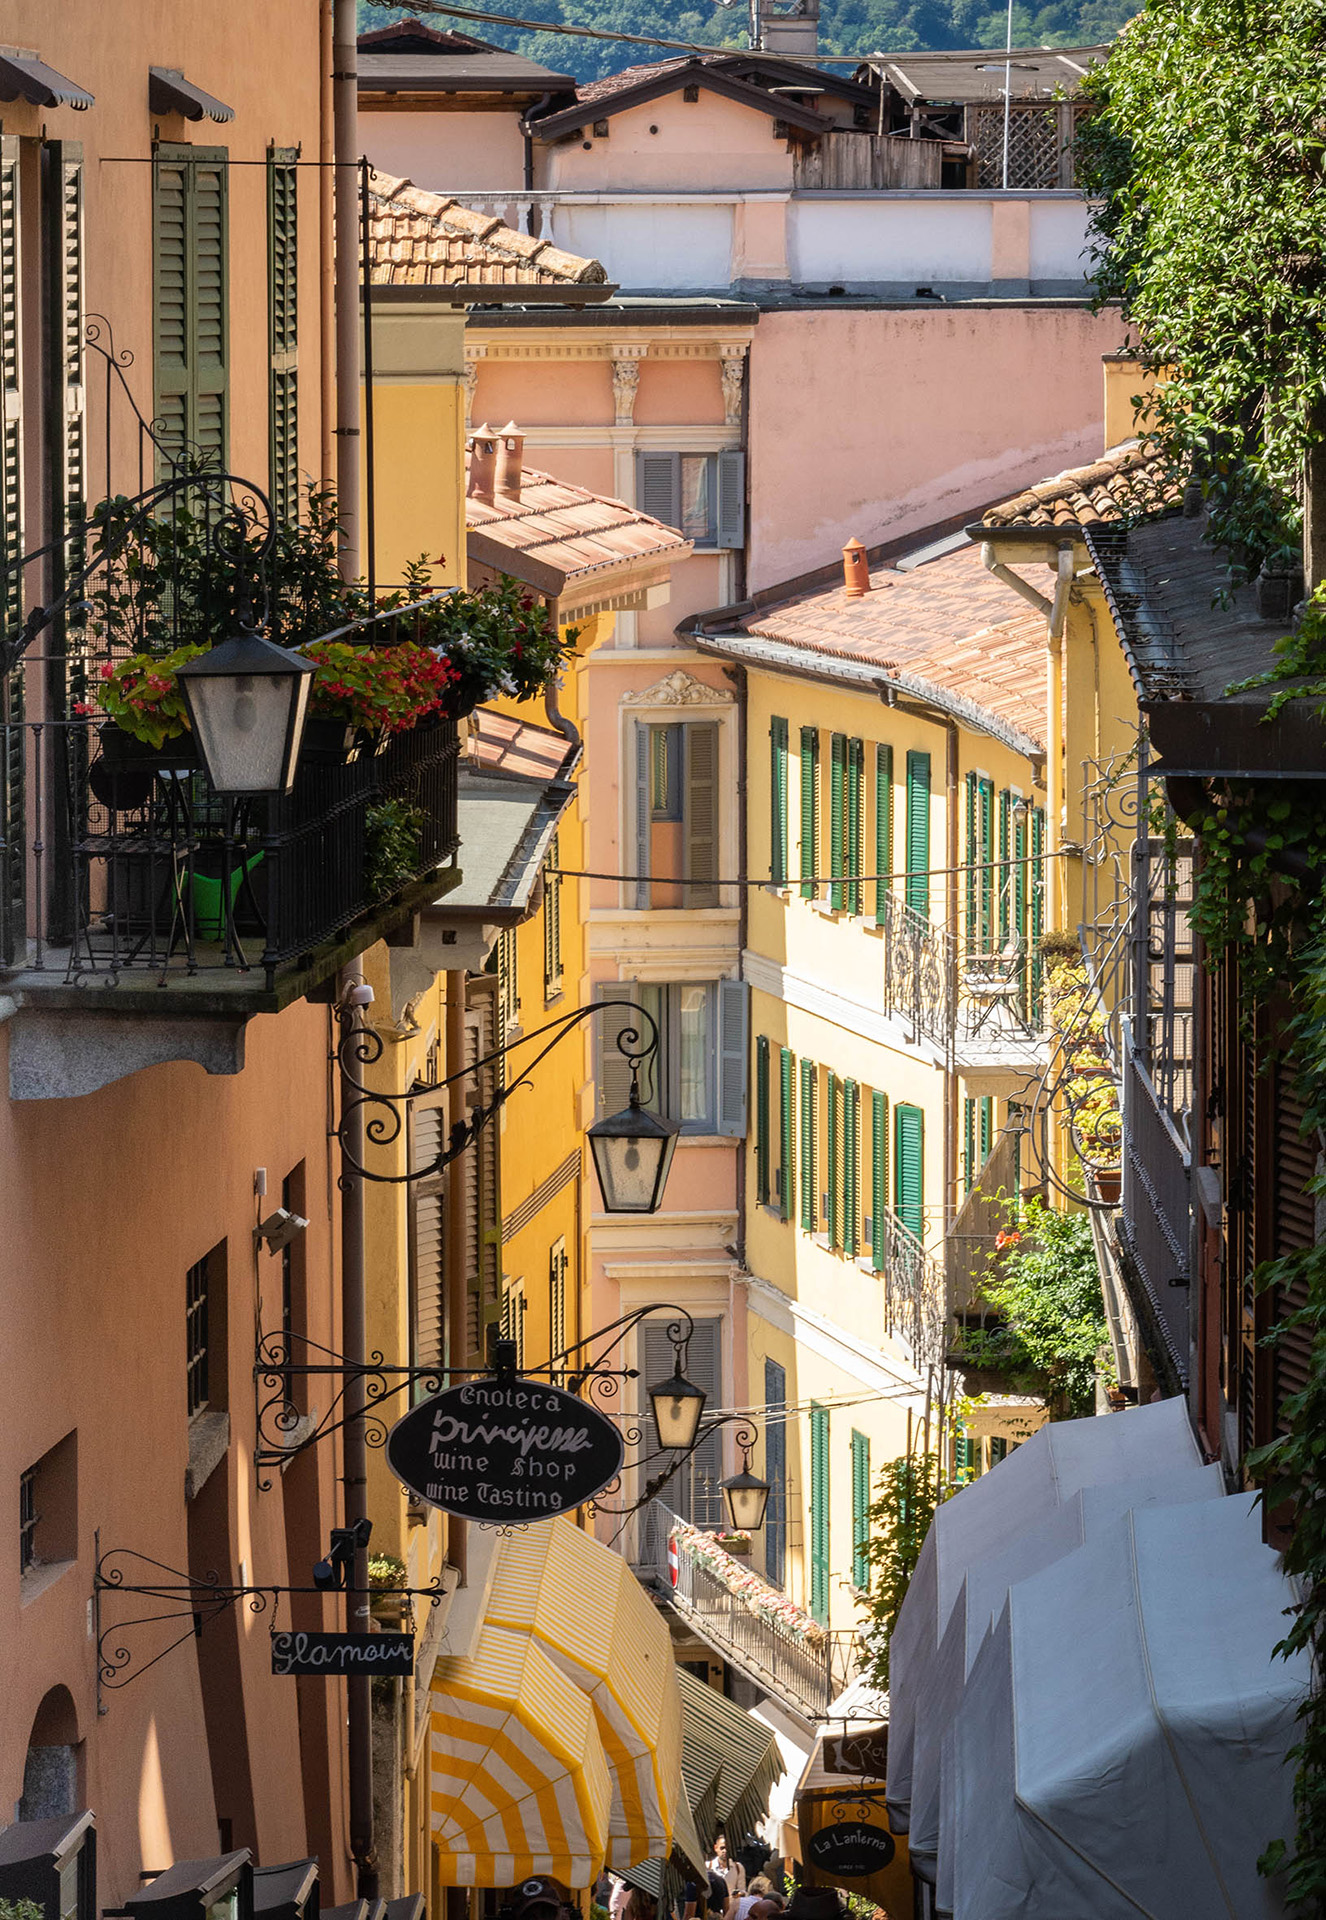 One of the steep and colourful pedestrianised streets of Bellagio